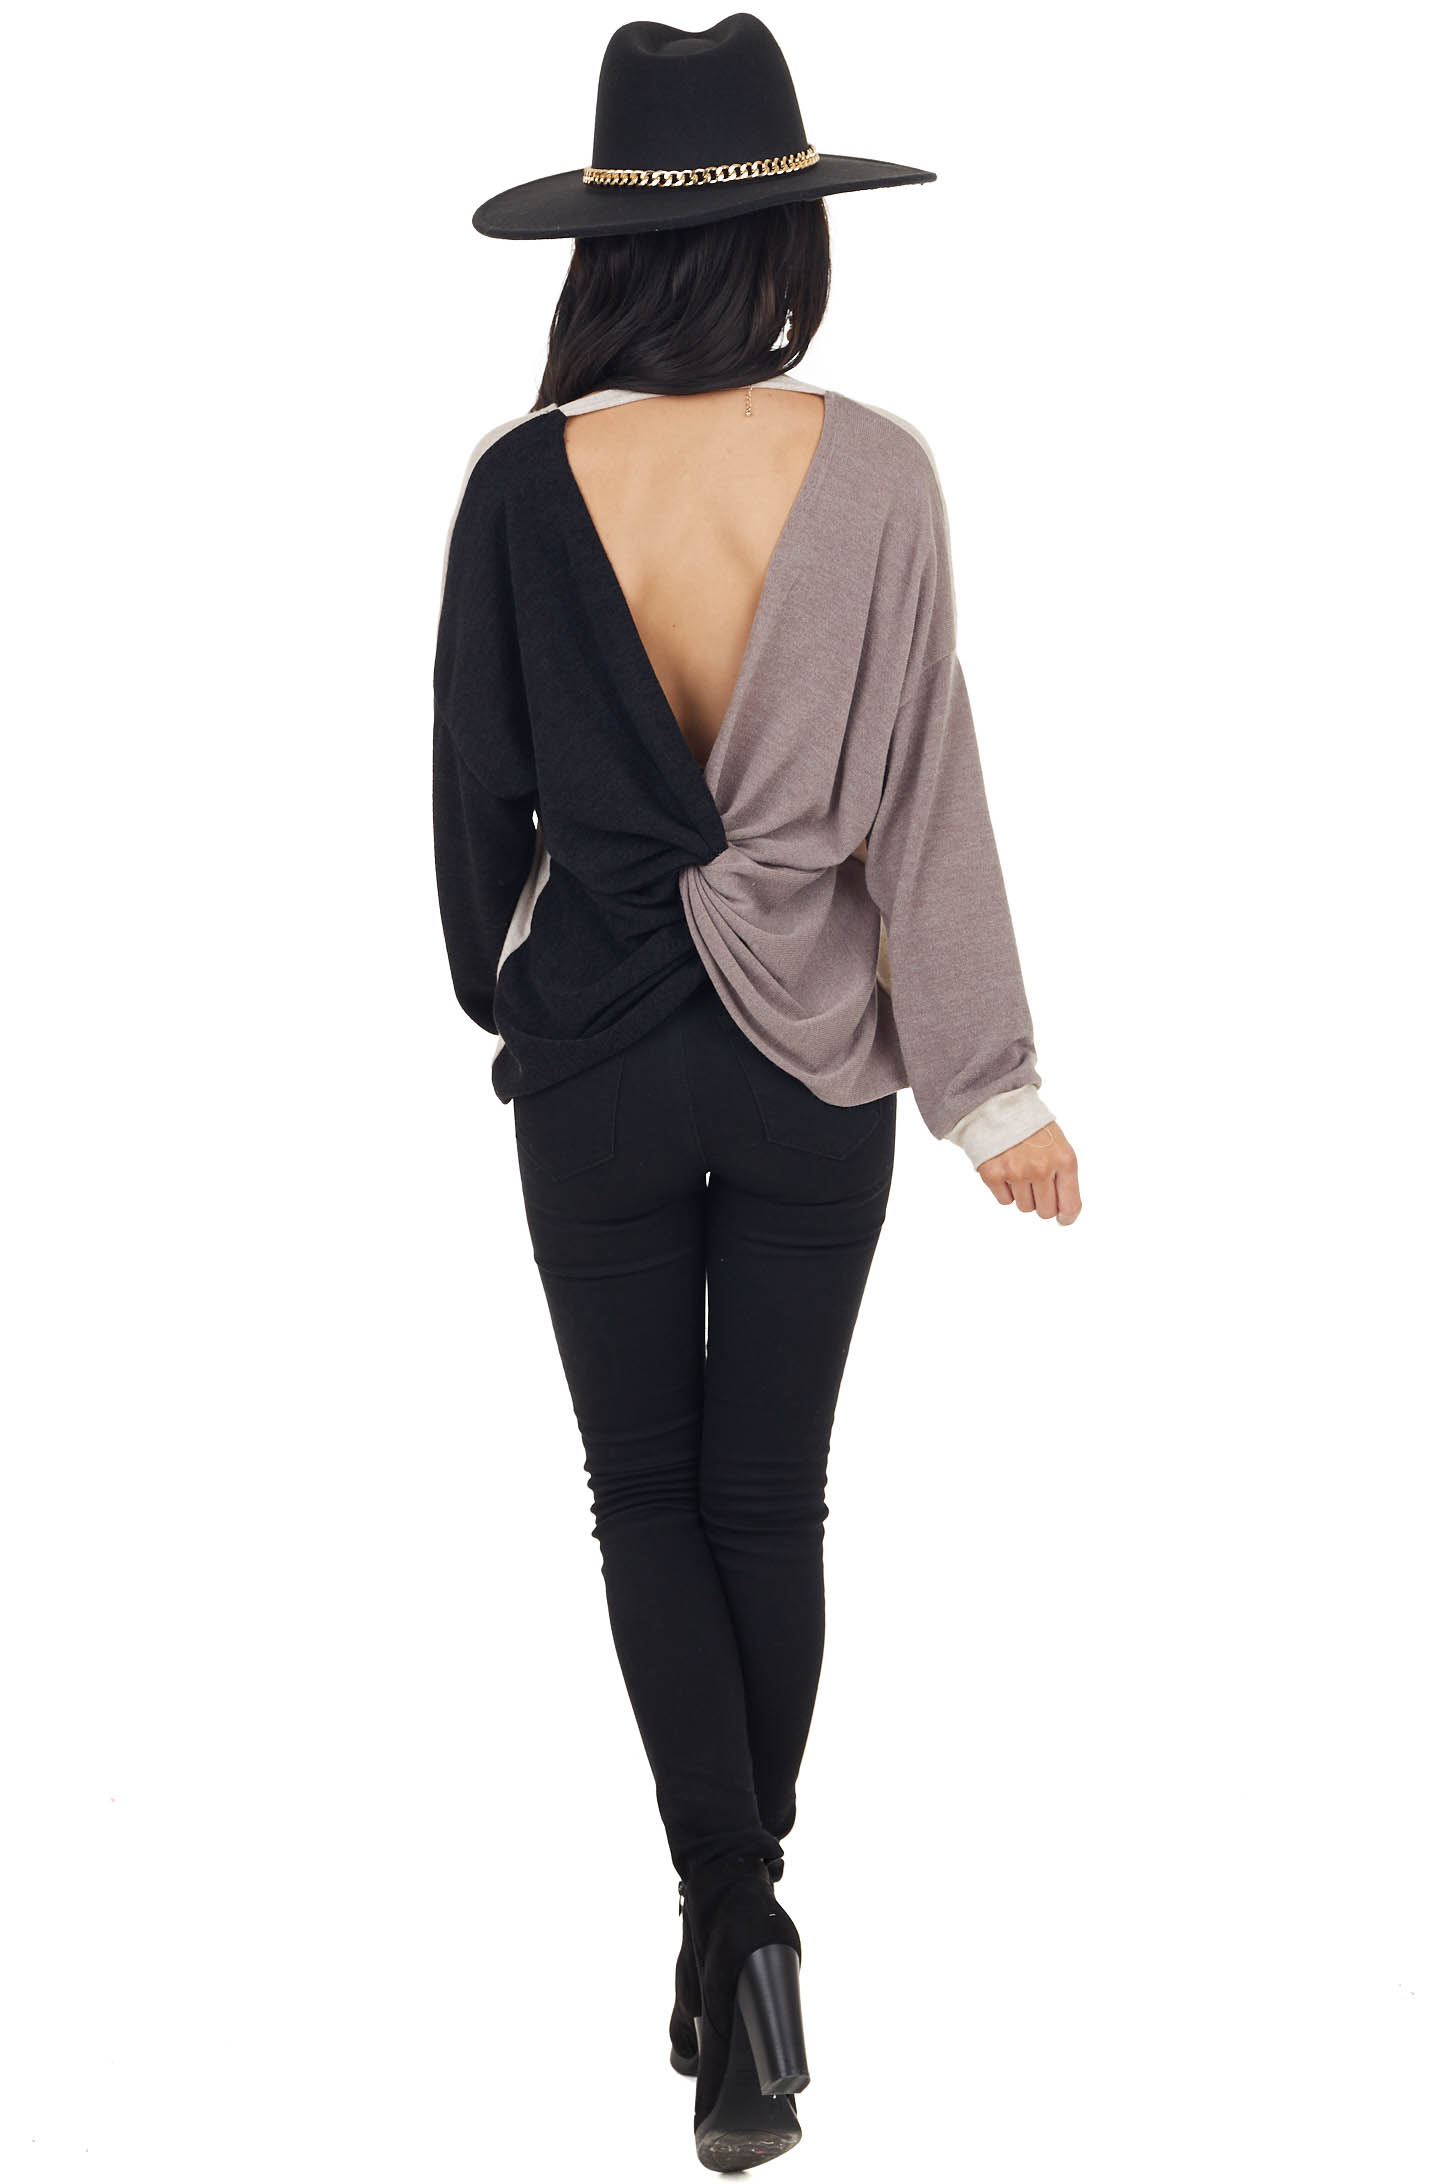 Blush Black and Taupe Colorblock Top with Back Twist Detail